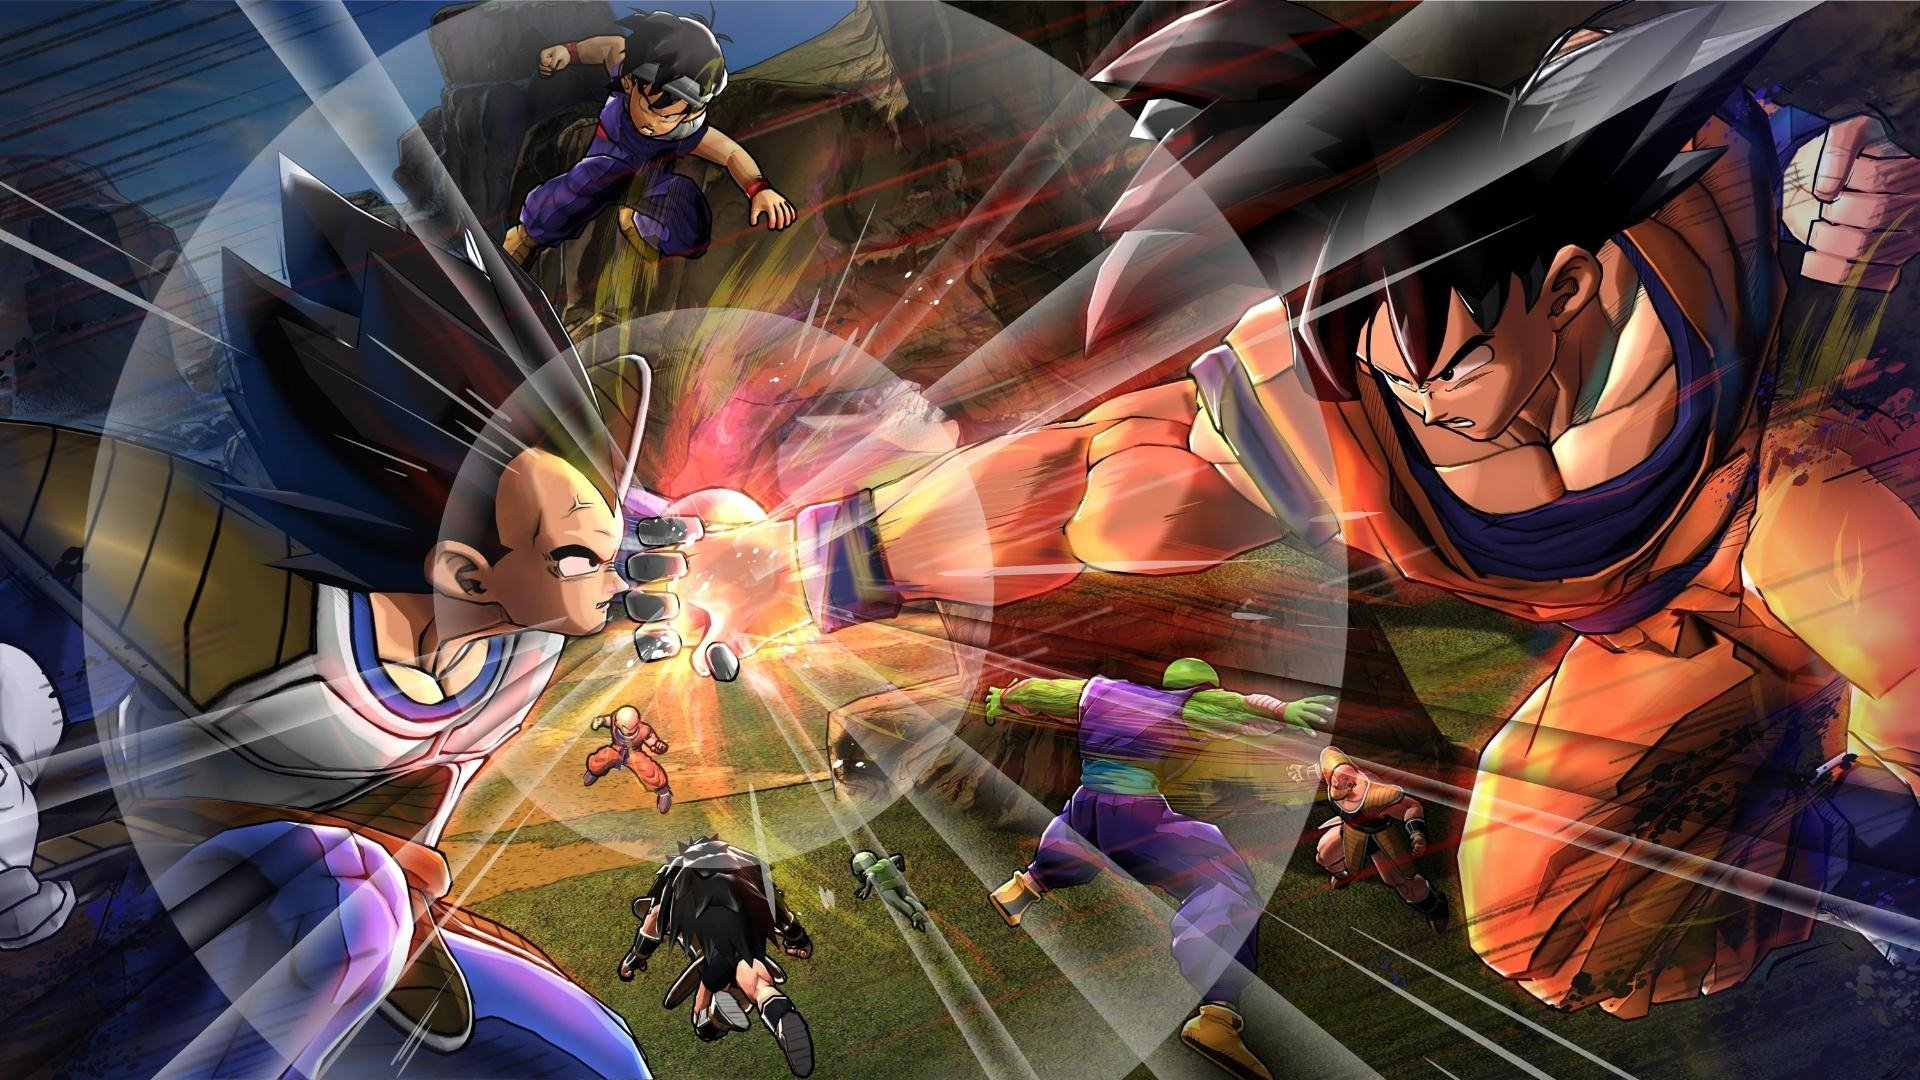 6 Dragon Ball Xenoverse Hd Wallpapers Background Images